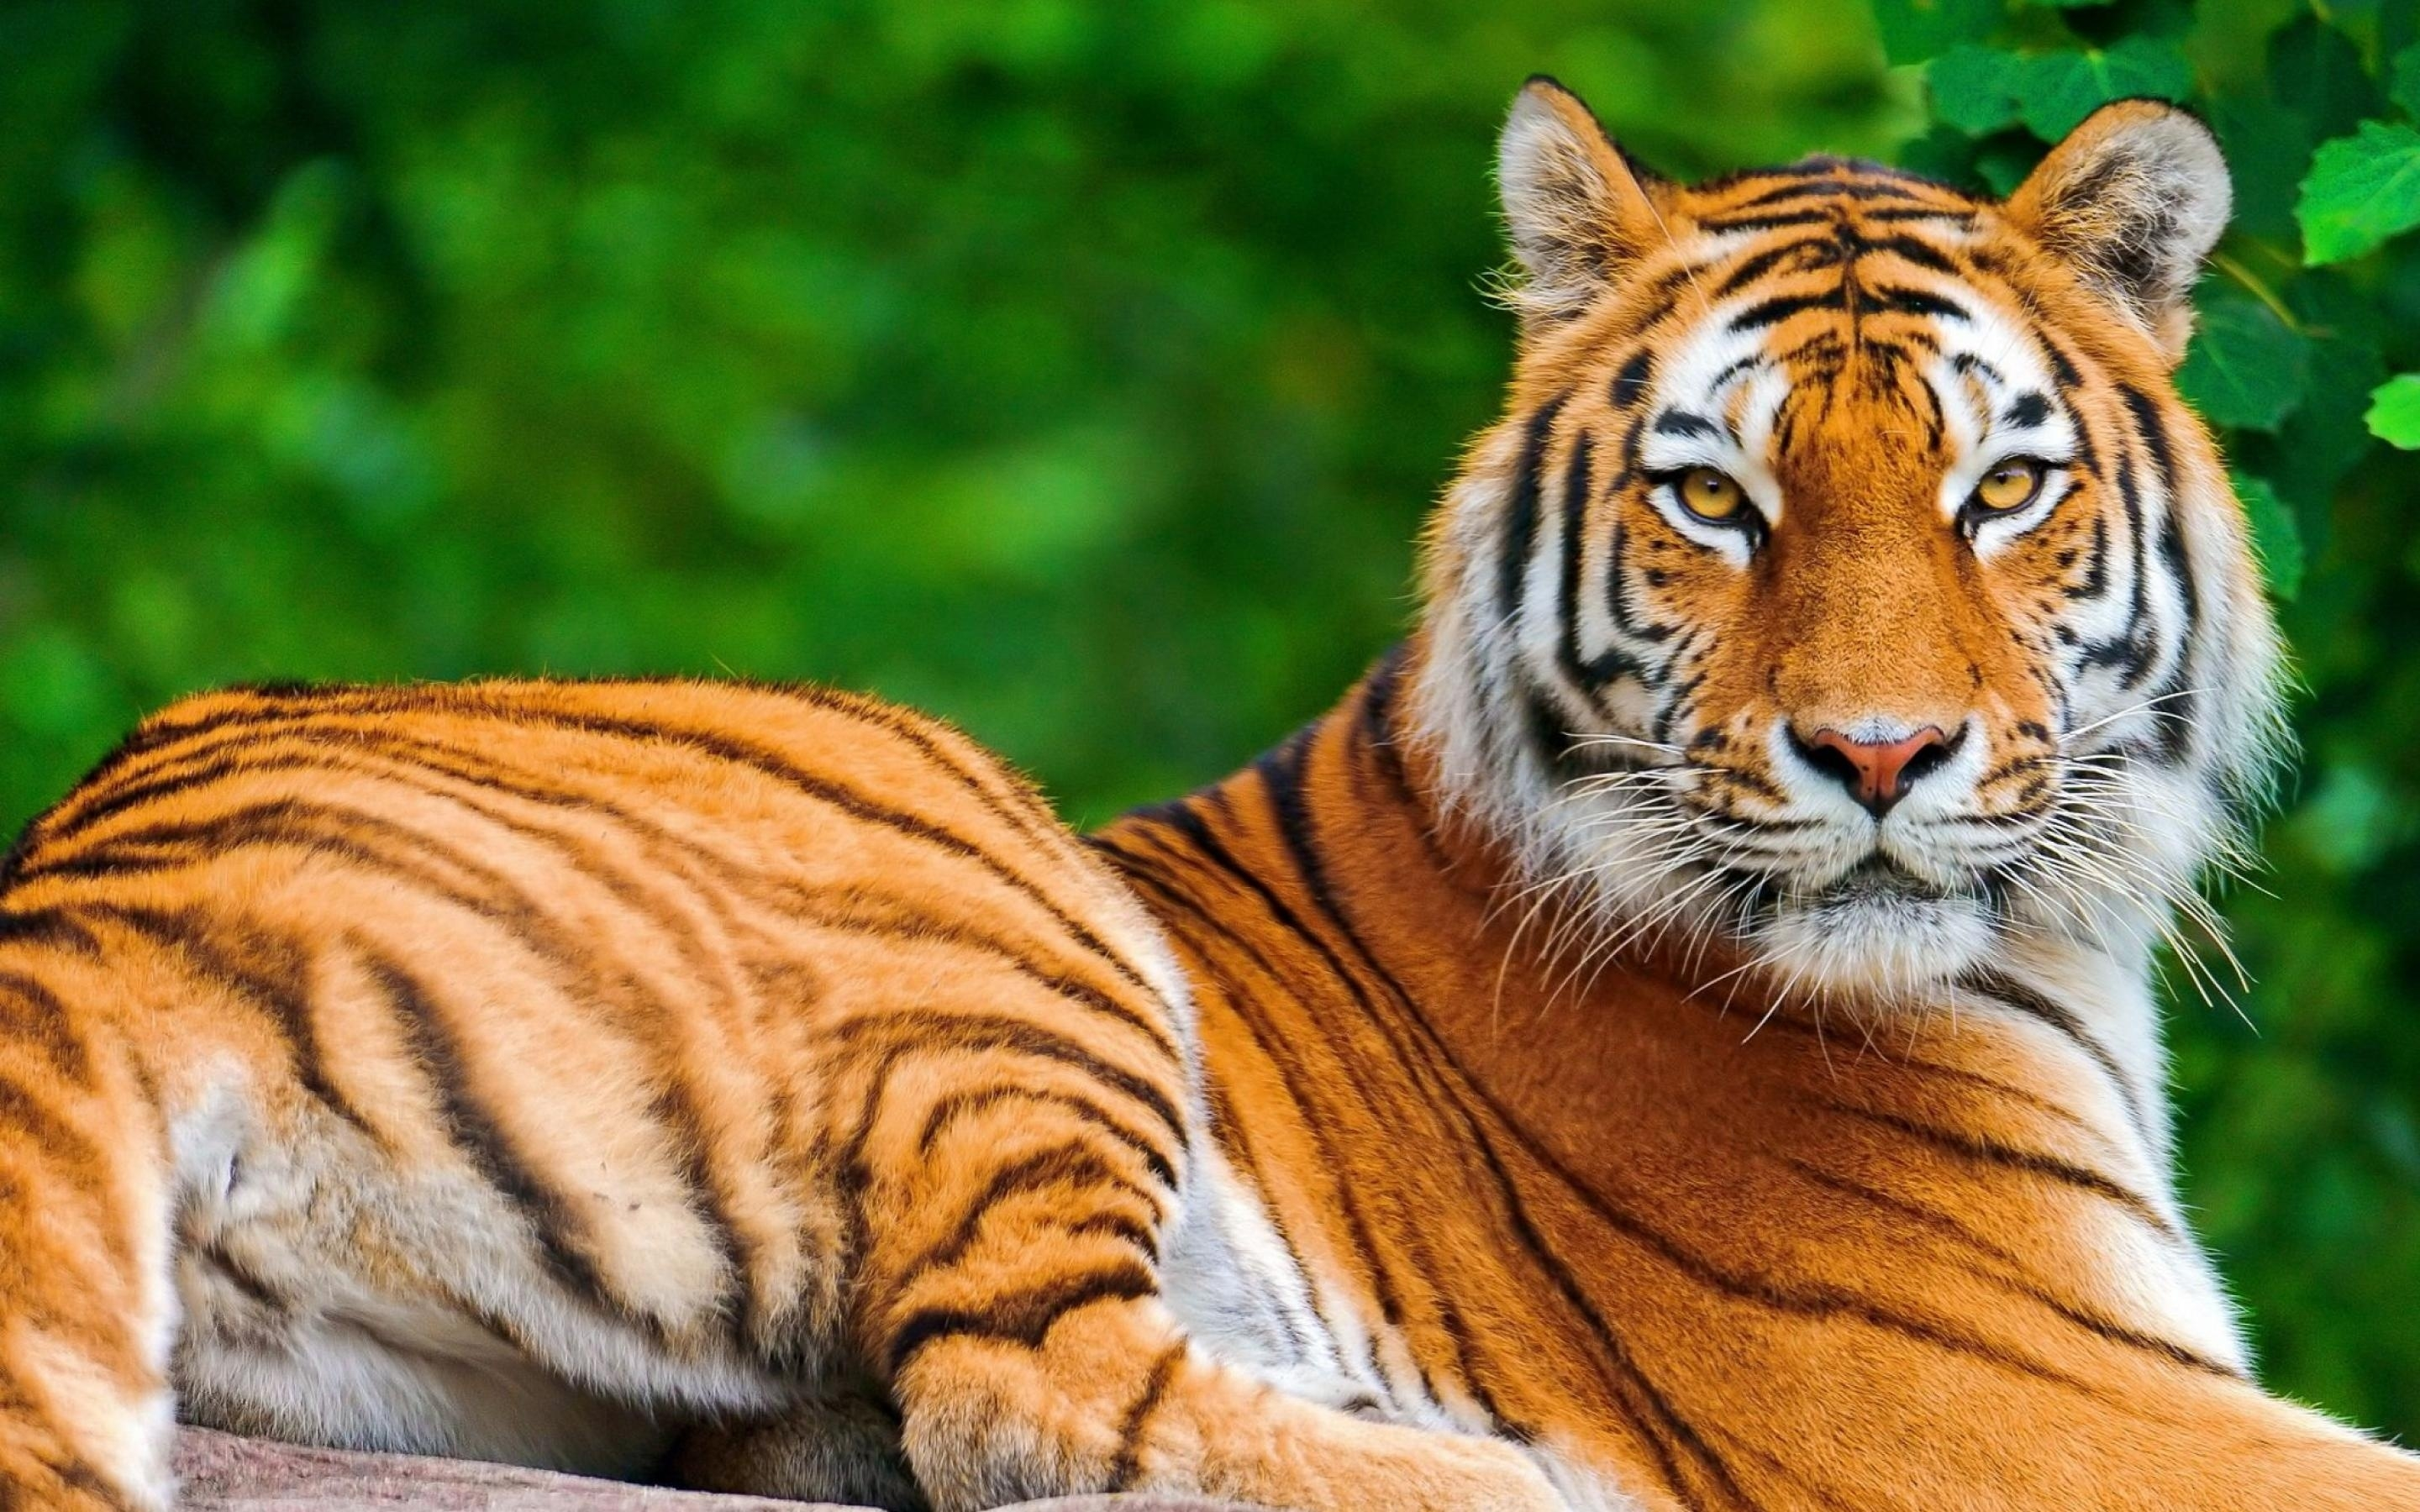 tiger full hd bachround